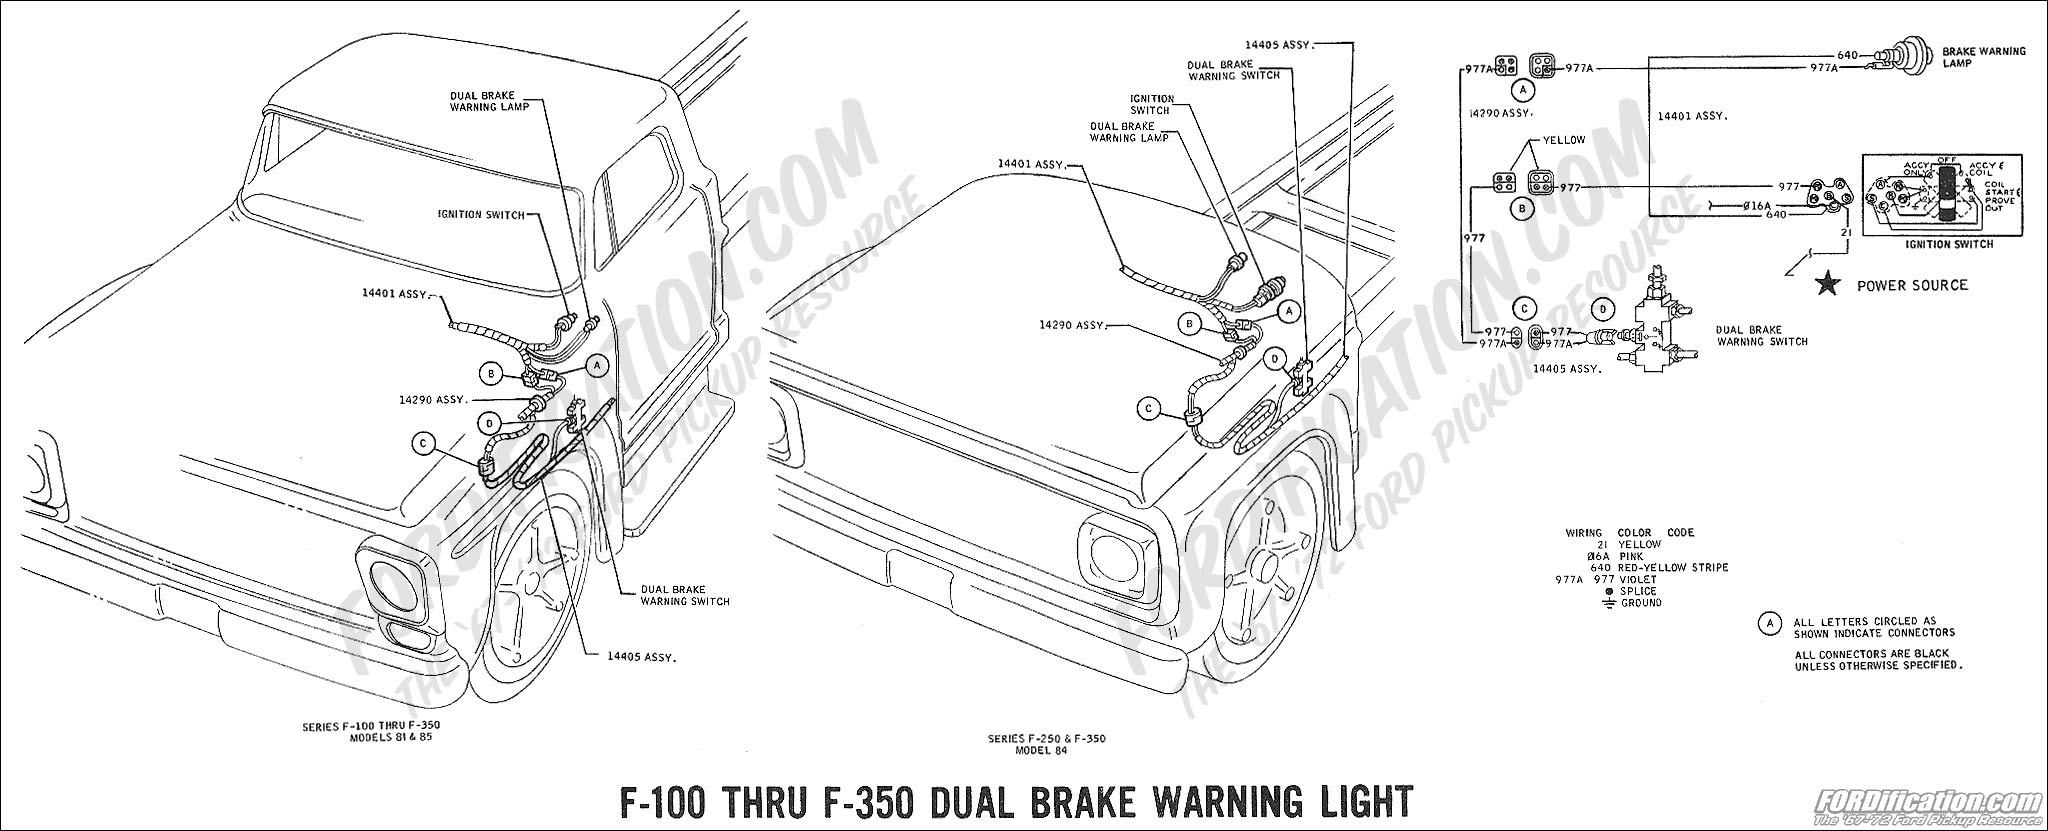 69 Ford F100 Fuse Box Wiring Library 1971 Chevy Truck Technical Drawings And Schematics Section H Rh Fordification Com